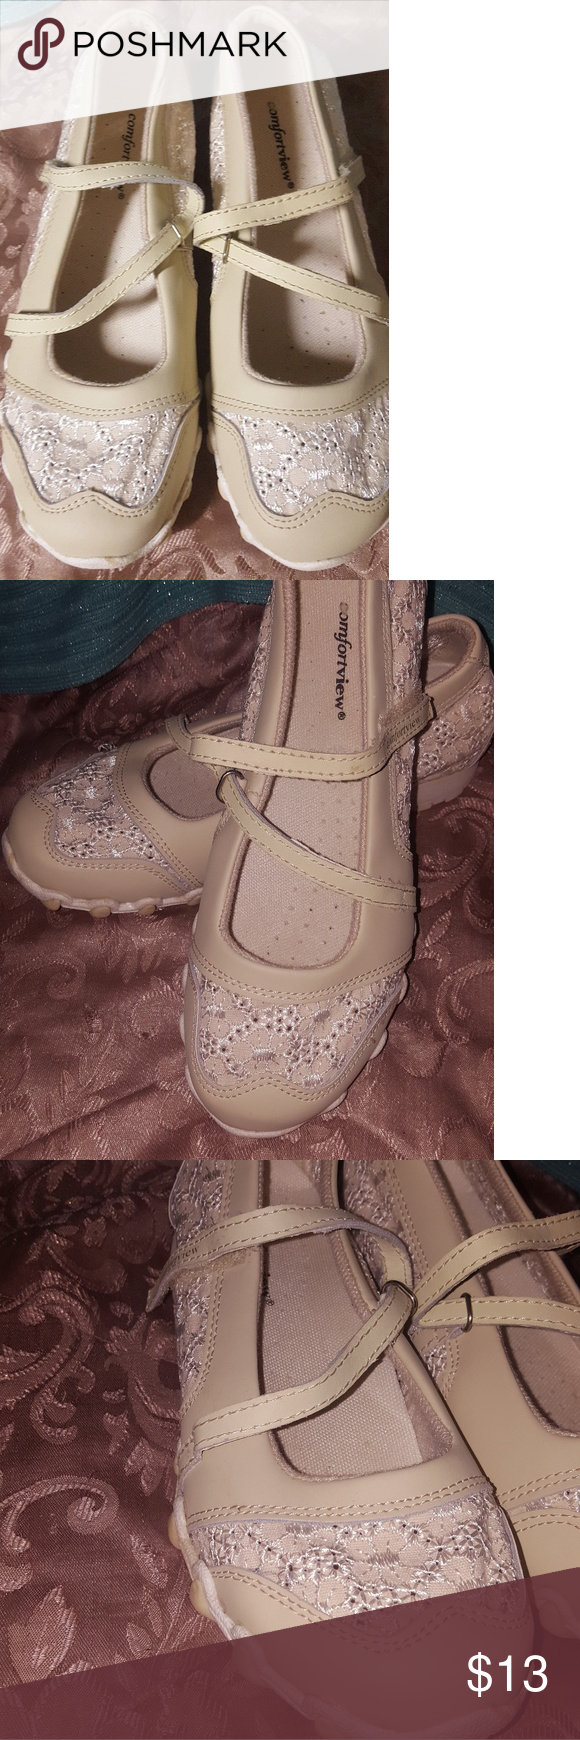 167c801ad Comfort View Women s Shoes 8.5 Fits more like 8 Cross between sandle and  tennis shoe. Very cute ivory color with lace and leather look.